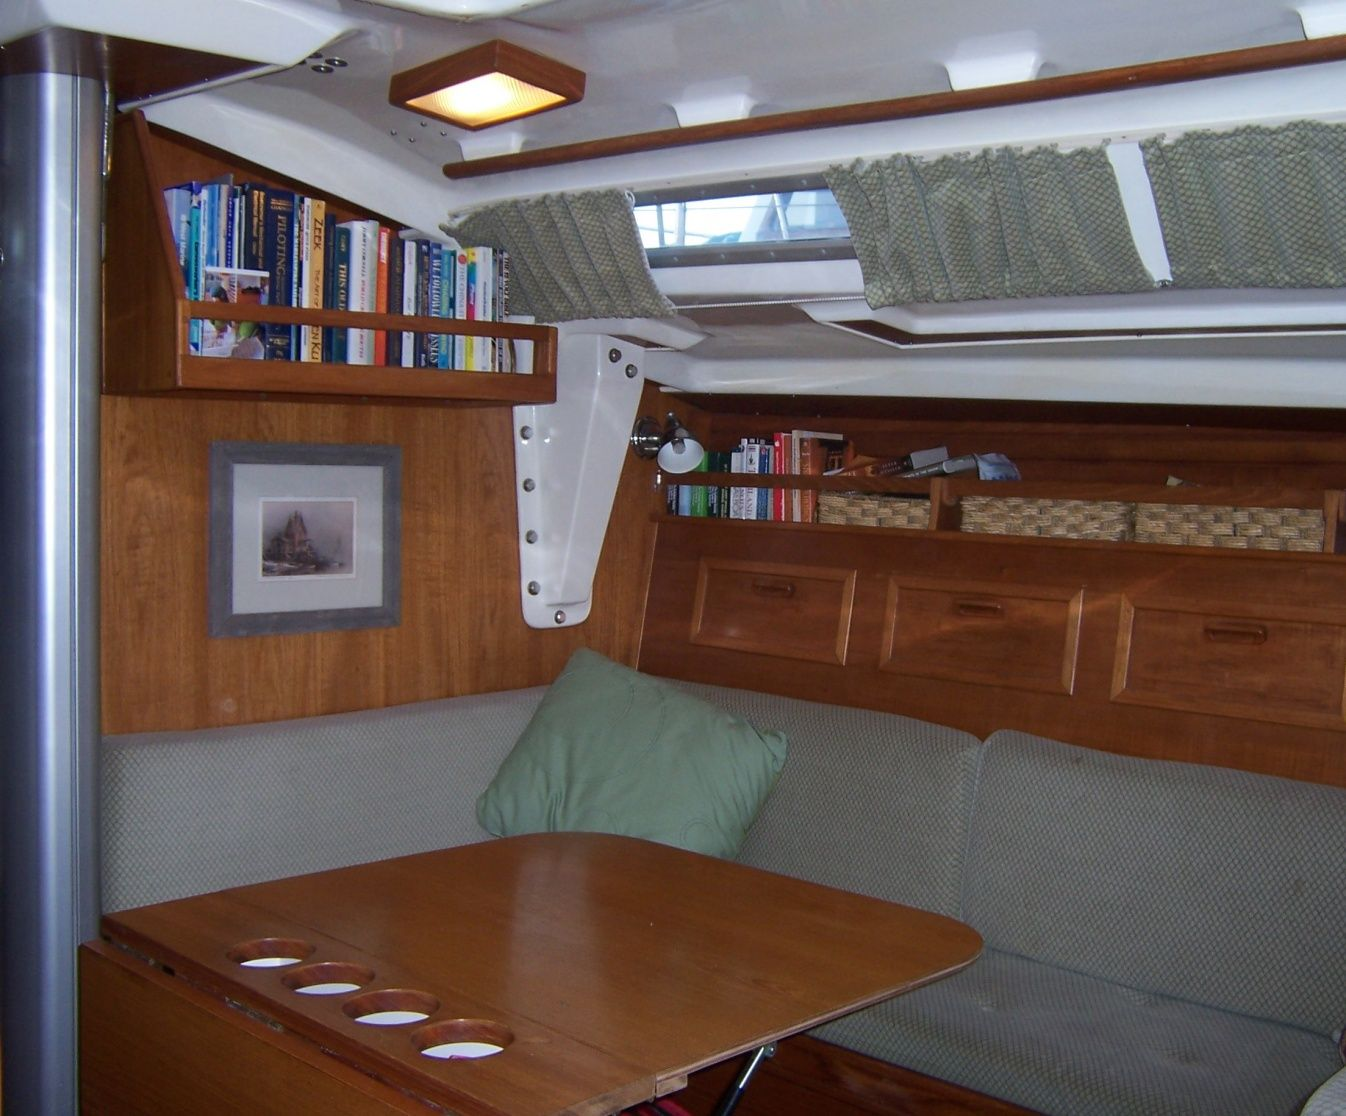 Making Your Own Curtains Using Shock Cords Http://www.sailboat Interiors